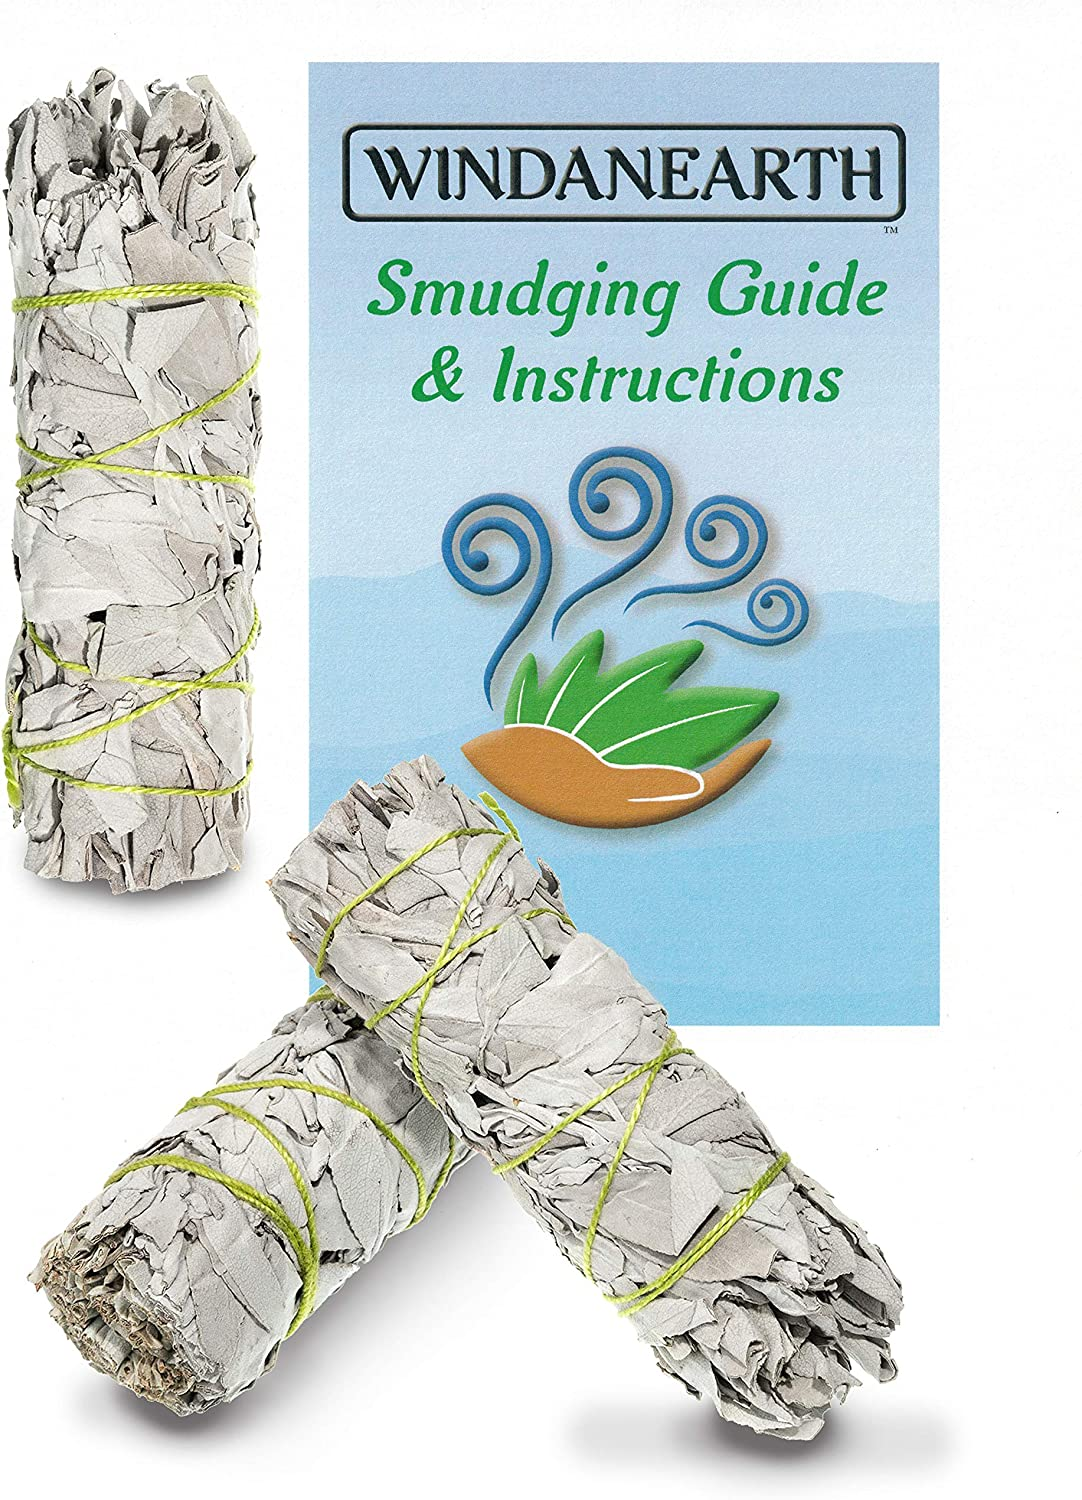 "Windanearth White Sage Smudge Sticks - 3 Pack 4"" Inch California White Sage Incense Sticks for Cleansing. Sage Smudge Kit Replenishment. Sage Bundles Grown and Packaged in The USA."